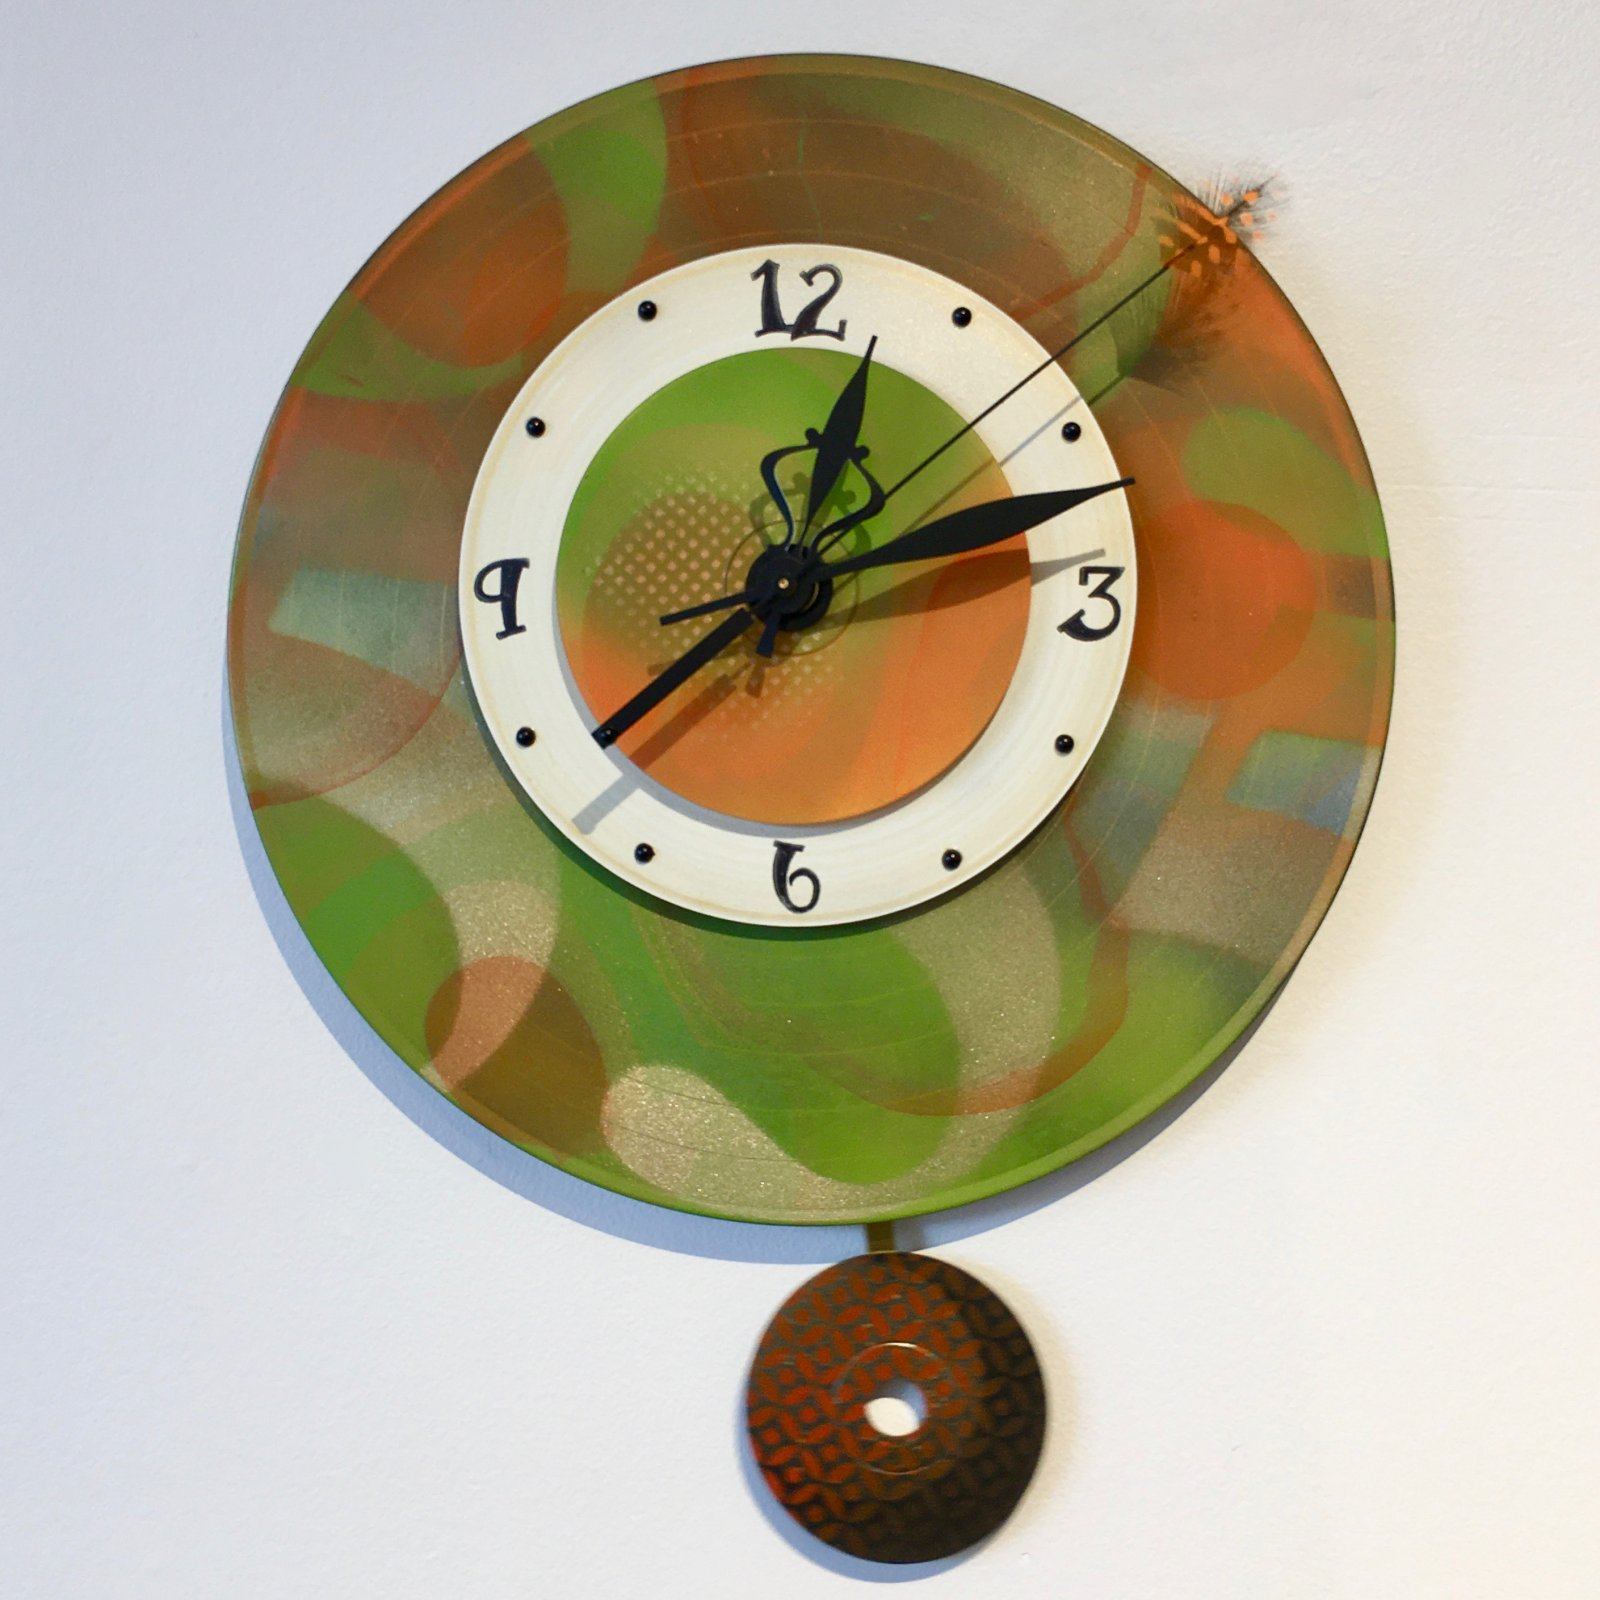 Dickinson Pendulum Clock